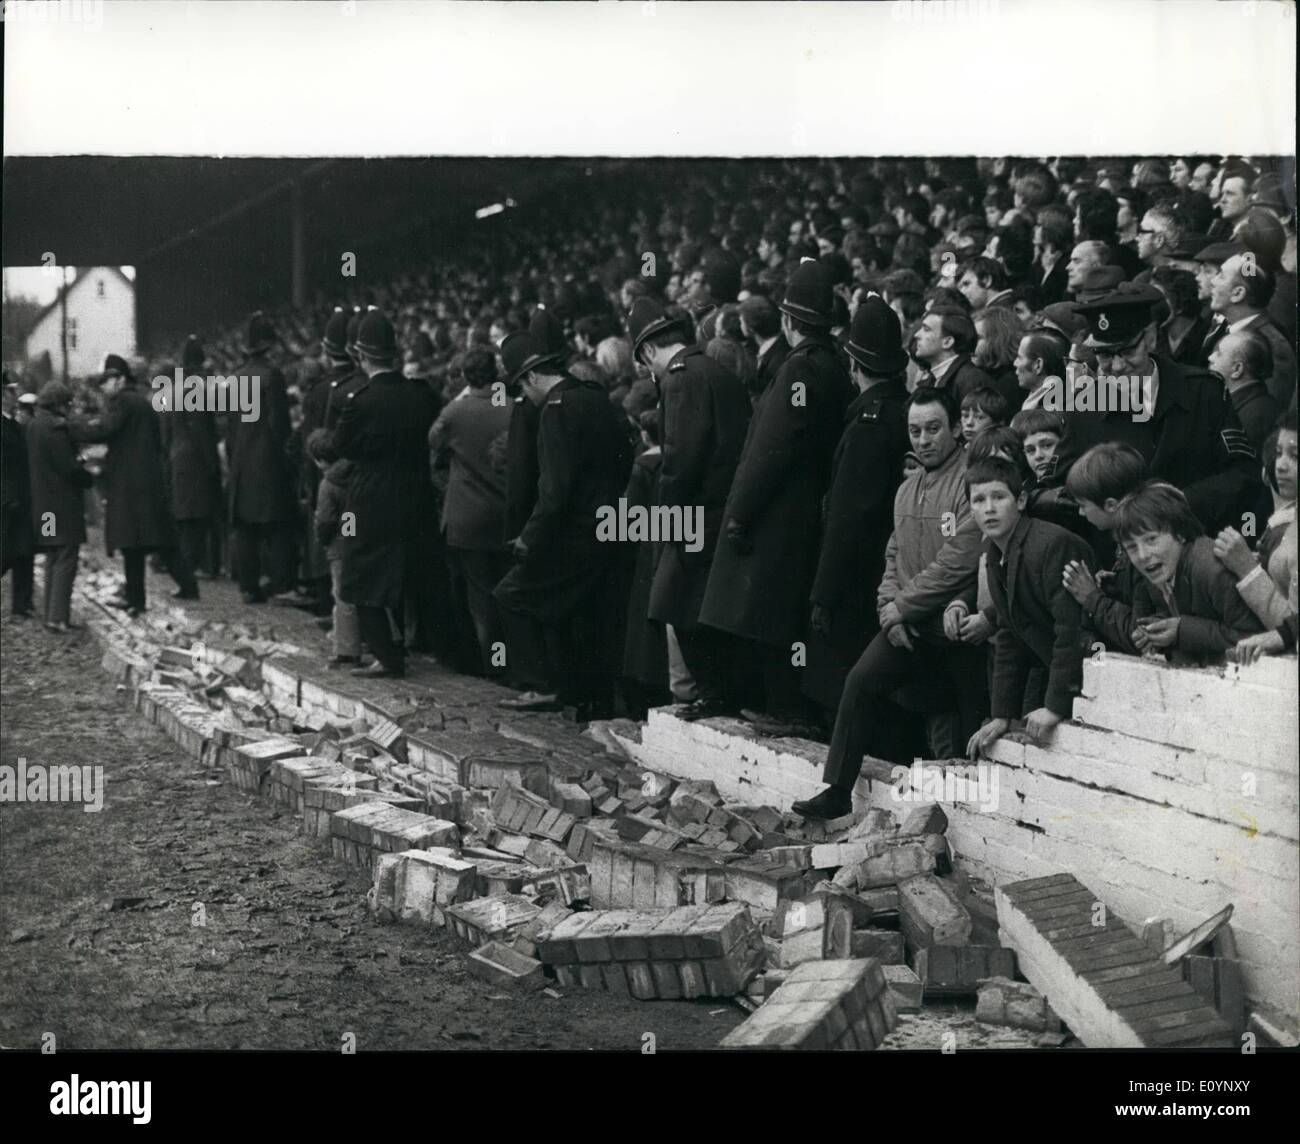 Jan. 01, 1971 - Collapsed Wall Injures 29 During The Oxford United V Watford F.A. Cup Match During the 4th round Stock Photo